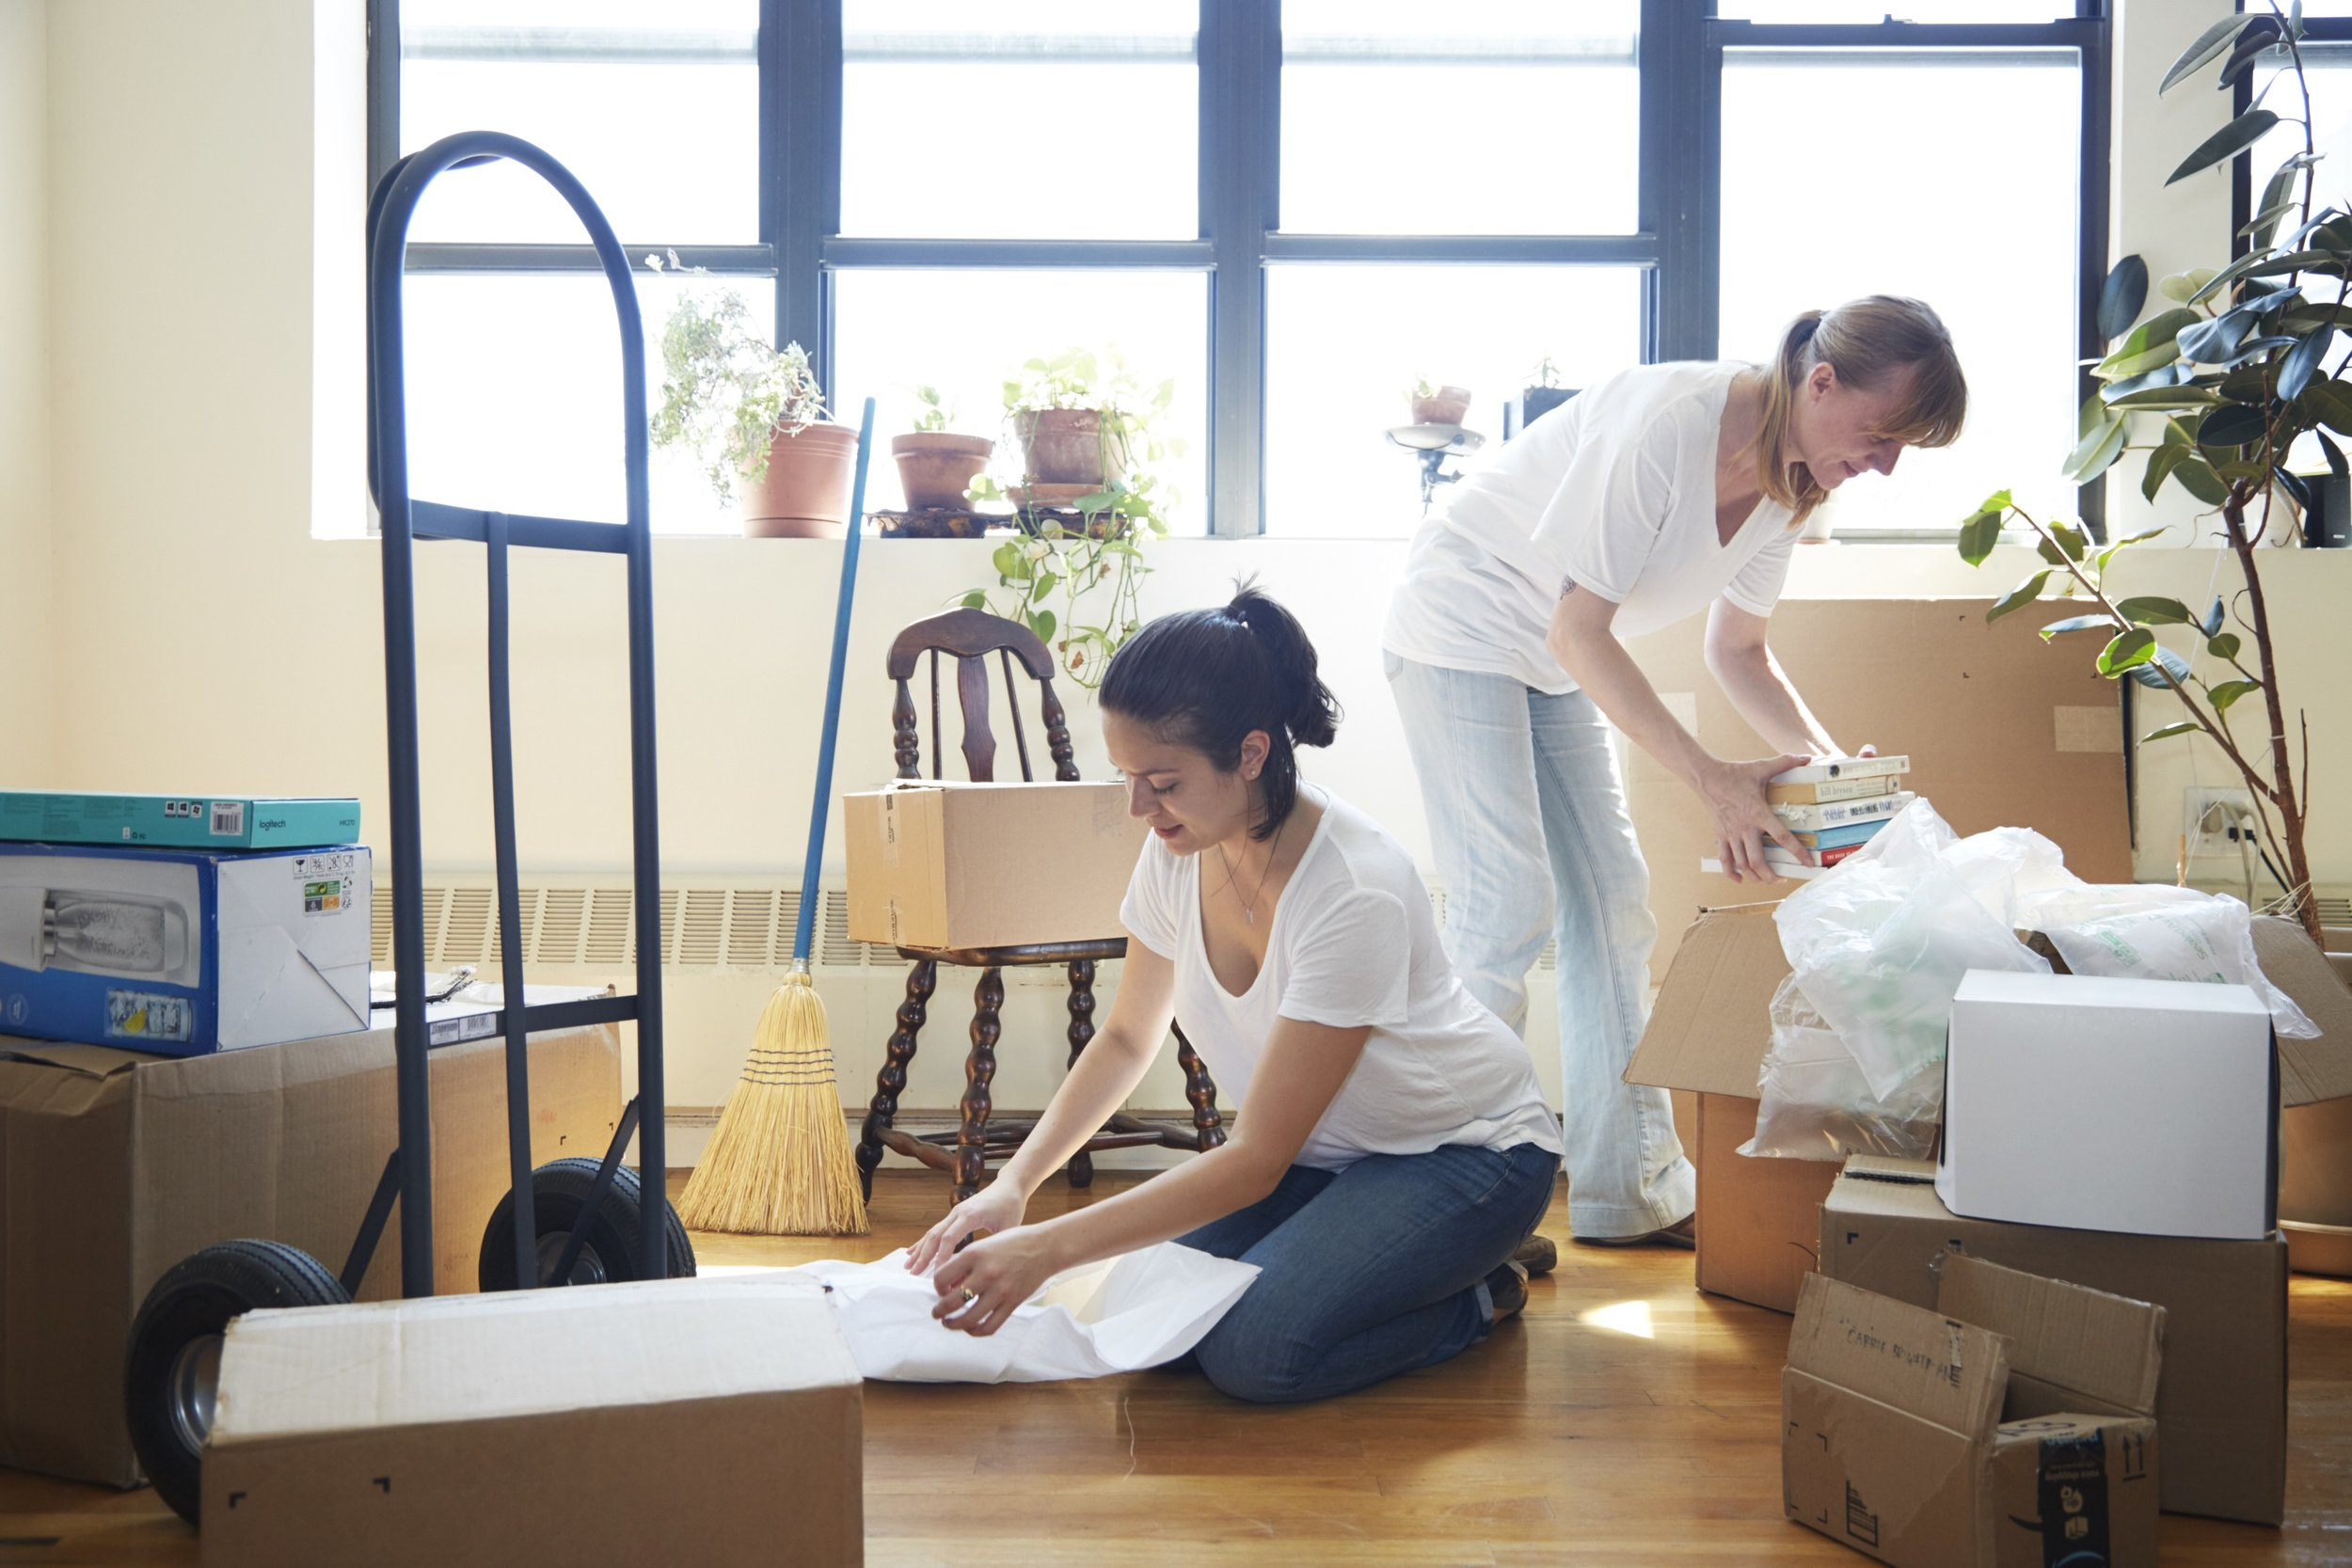 NYC Home Move Management - Does the thought of moving give you hives?Wish you could move into your new home and find everything set up just so (without lifting a finger?)Instead of spending time sorting, packing, and finding movers, just hand it over to us. Whether it's an extra set of hands or project managing the entire move, let deVivre Concierge help you get settled into your new home.